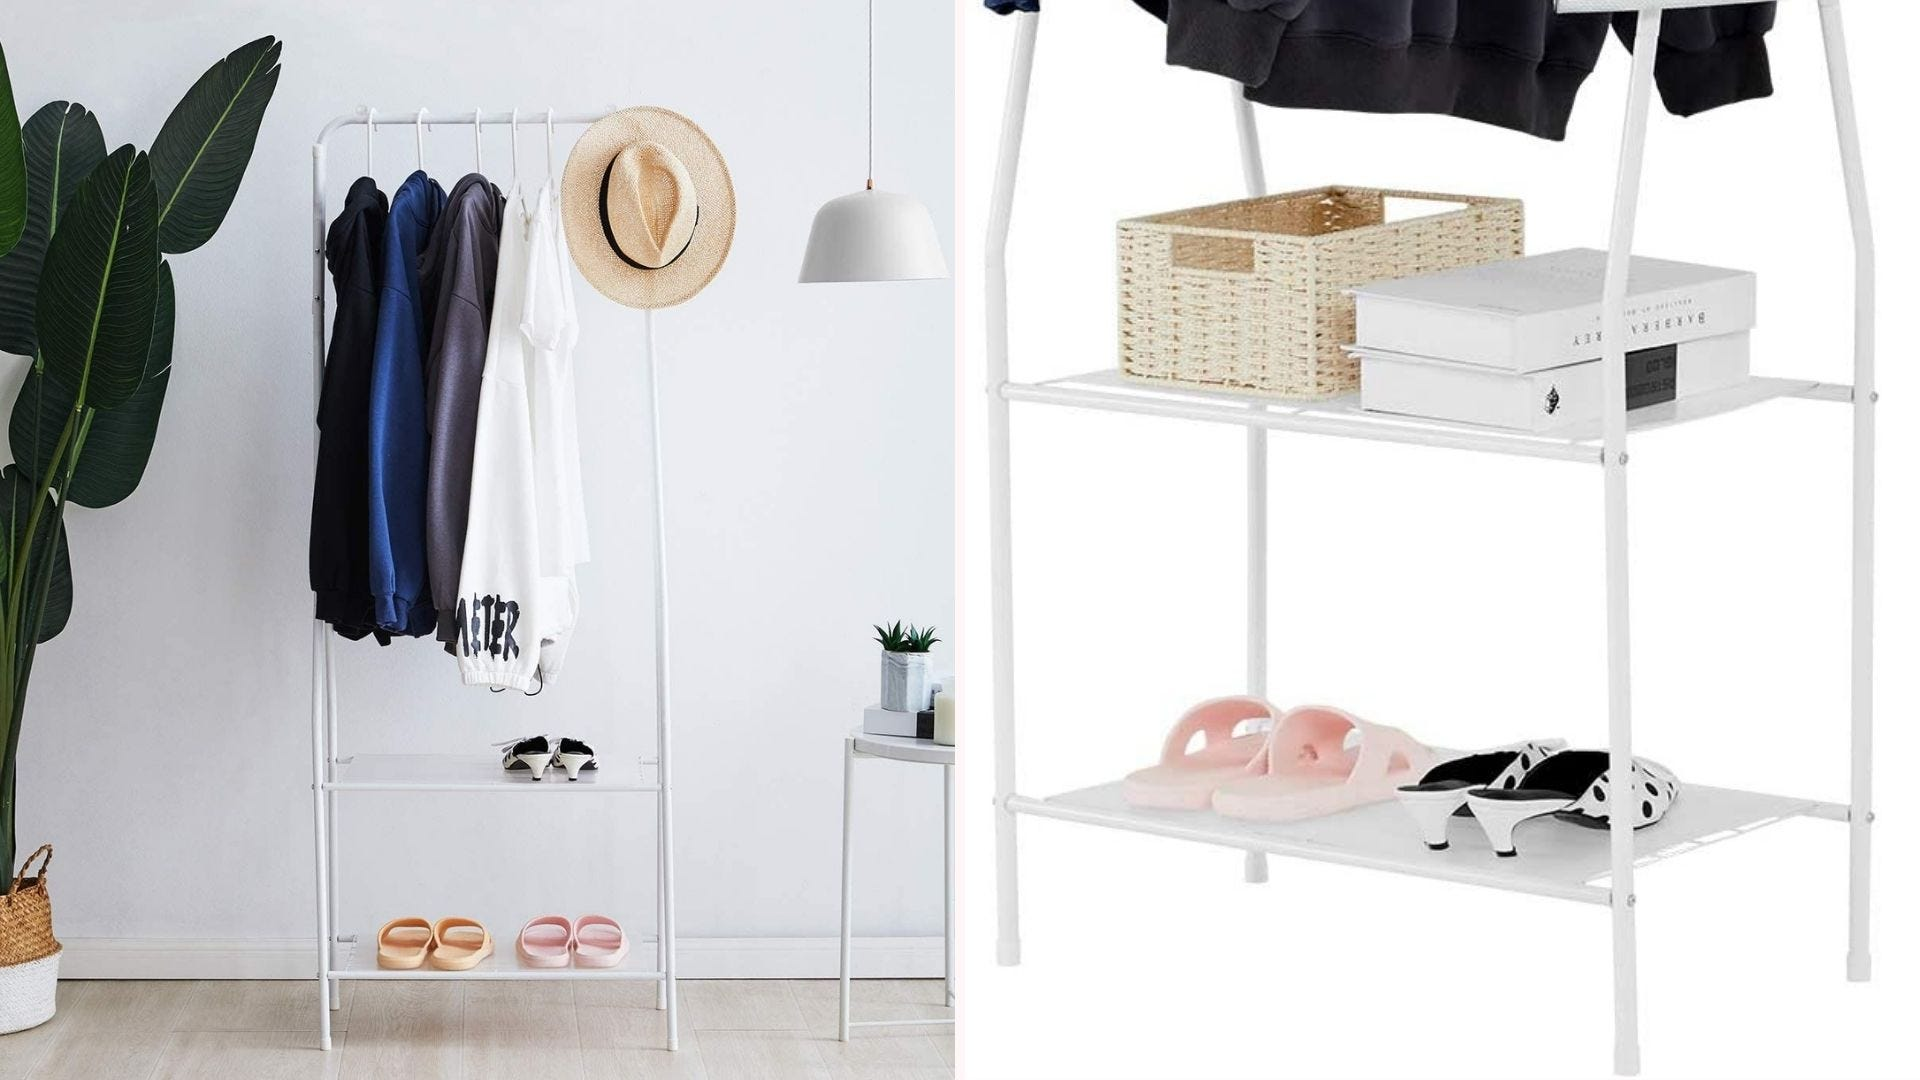 Metal clothing rack with two lower shelves.